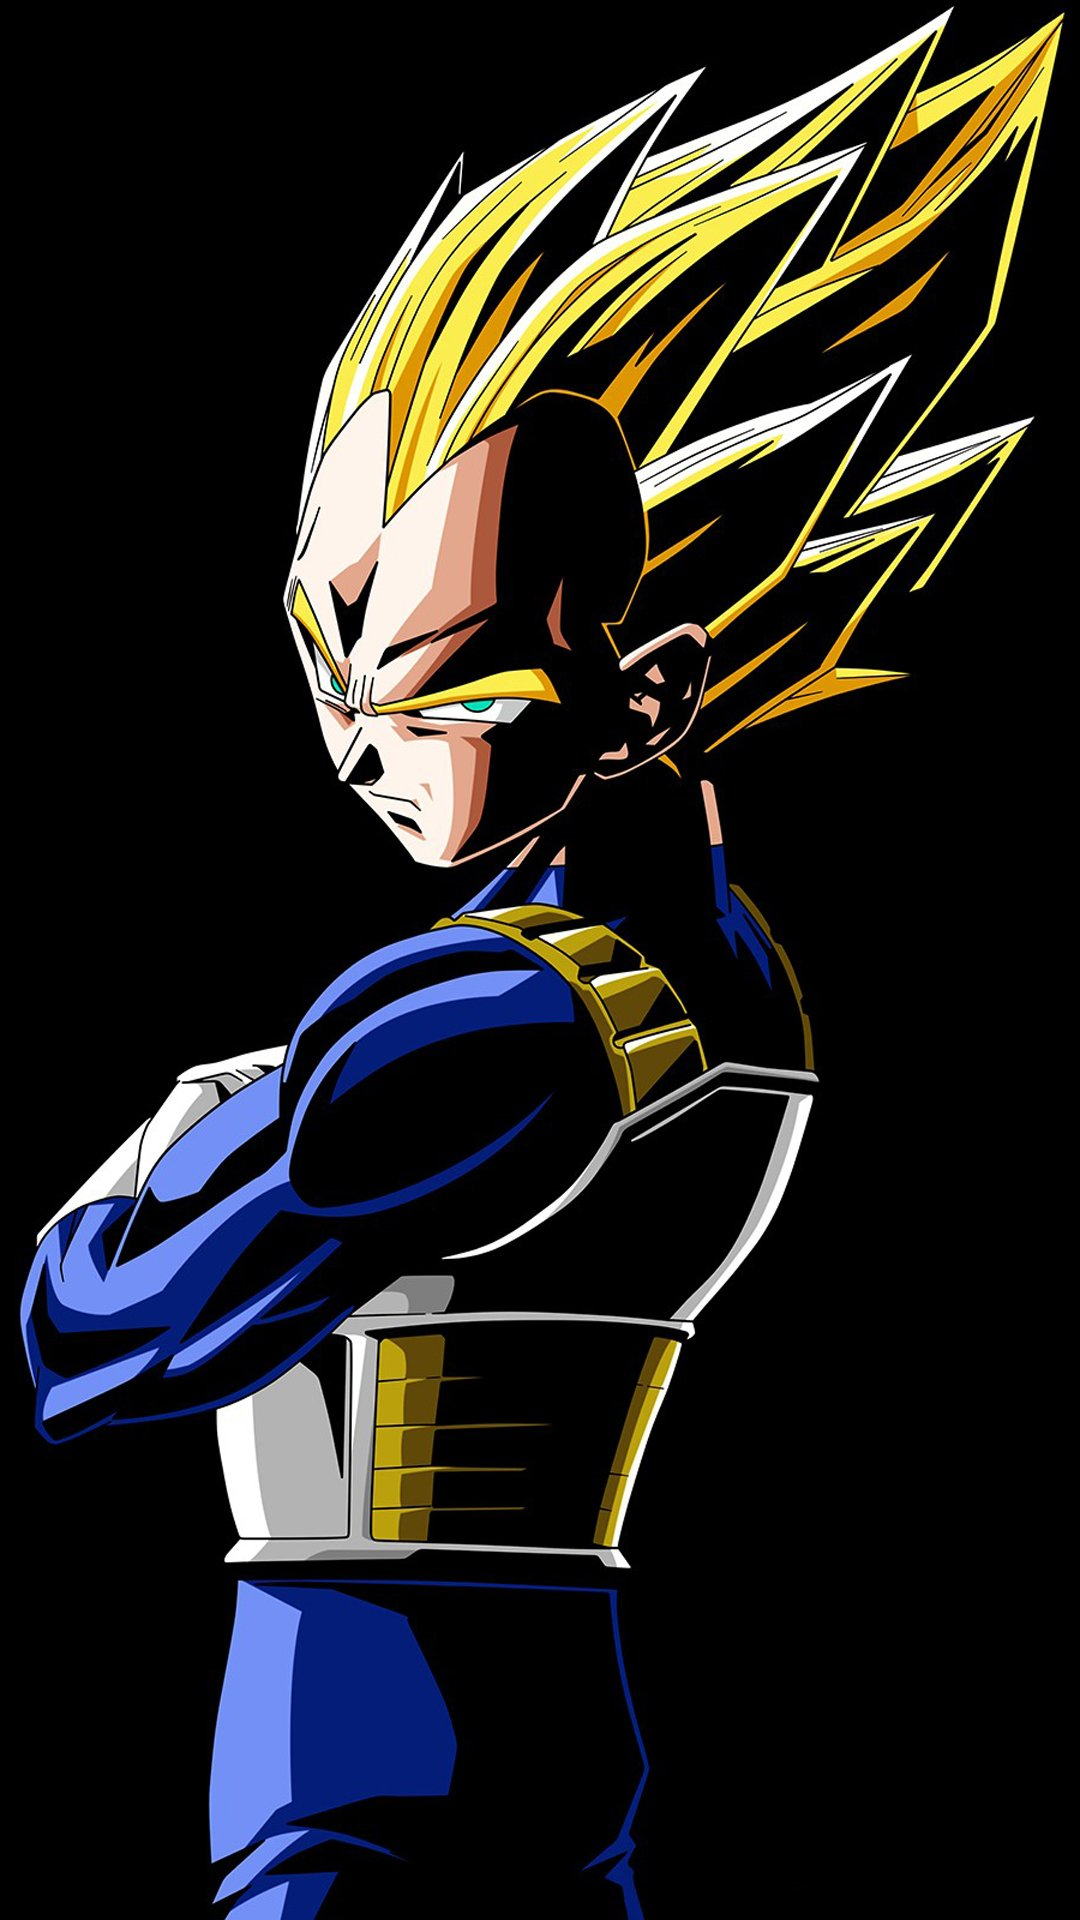 dragon ball z iphone wallpaper vegeta iphone wallpaper wallpapersafari 16892